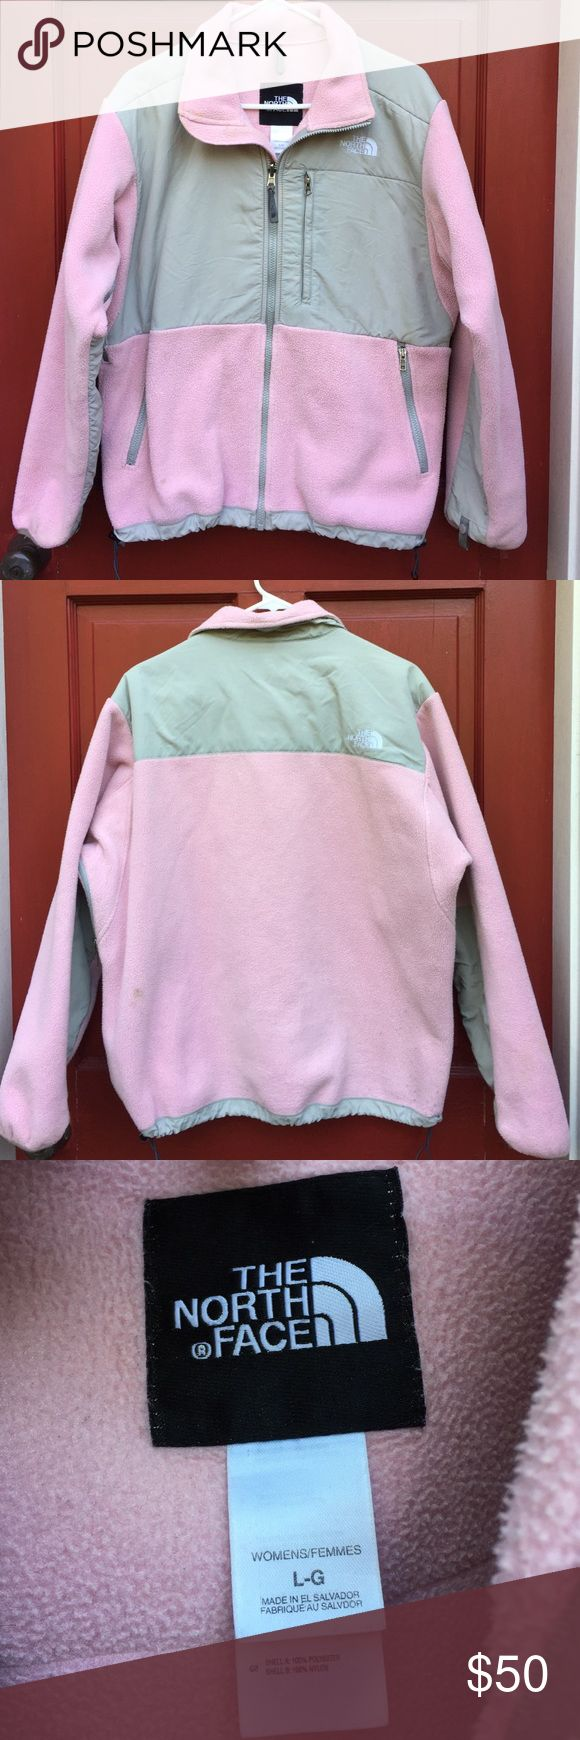 North Face women's pink fleece jacket size L North Face women's fleece pink zip up jacket size L. Used, in good condition. There is a stain on the front left, bottom of the jacket. North Face Jackets & Coats